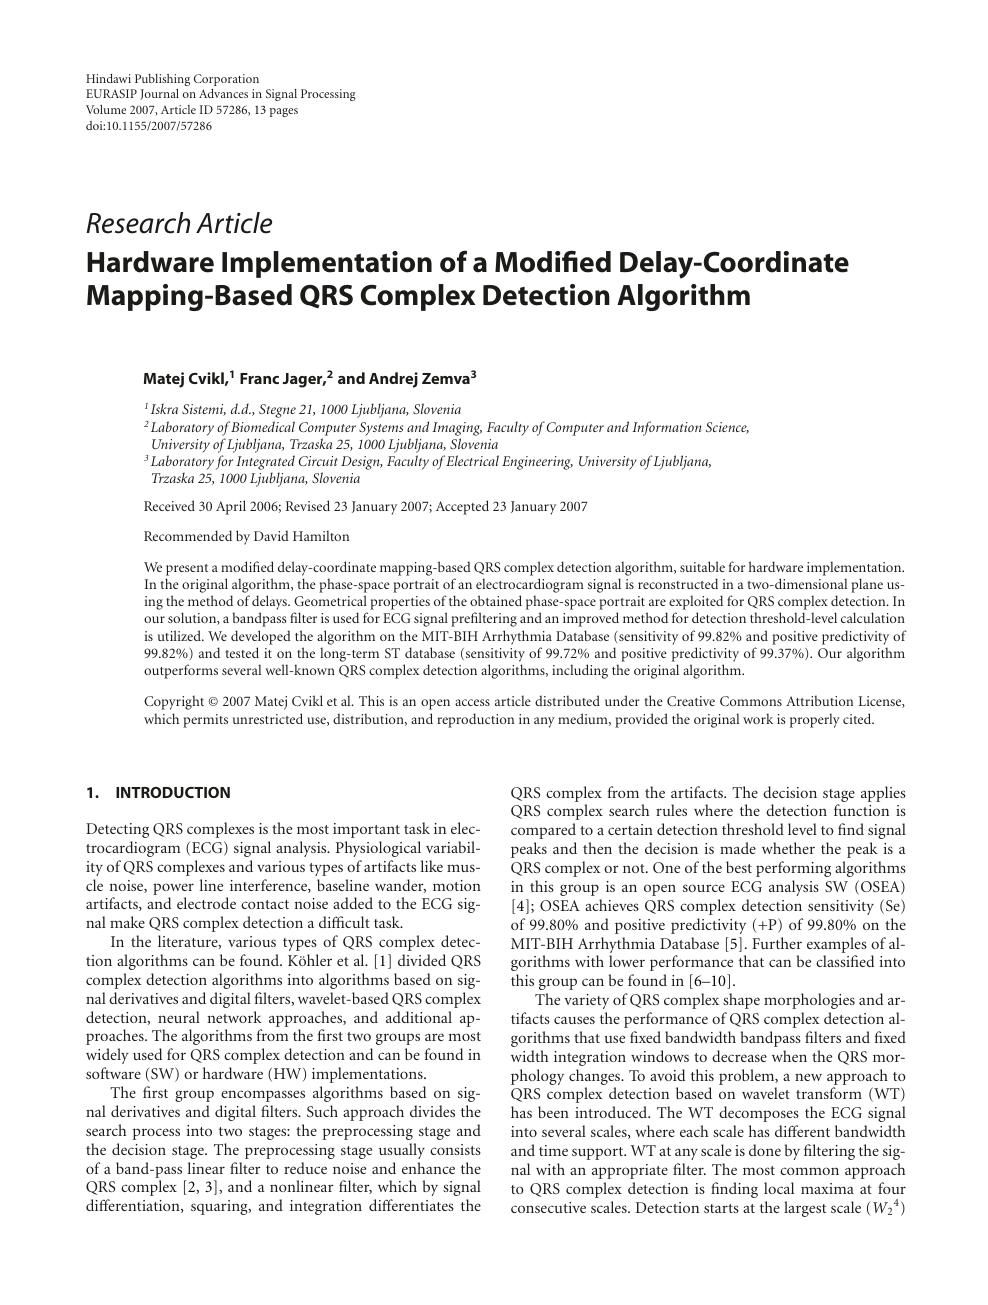 Hardware Implementation of a Modified Delay-Coordinate